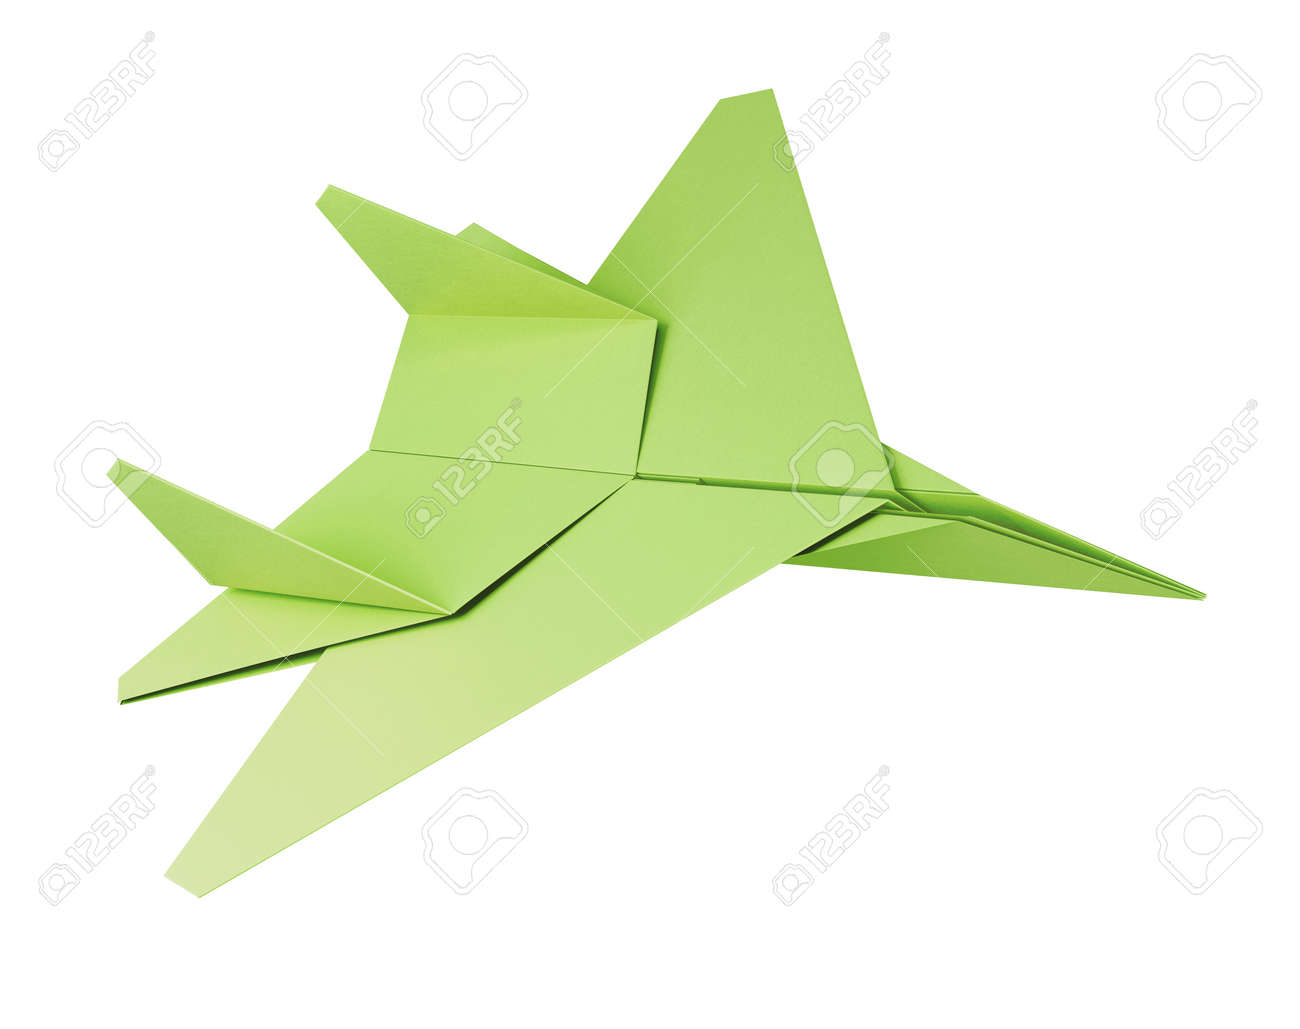 Origami Plane Set With Shadow Stock Illustration - Download Image ... | 1029x1300